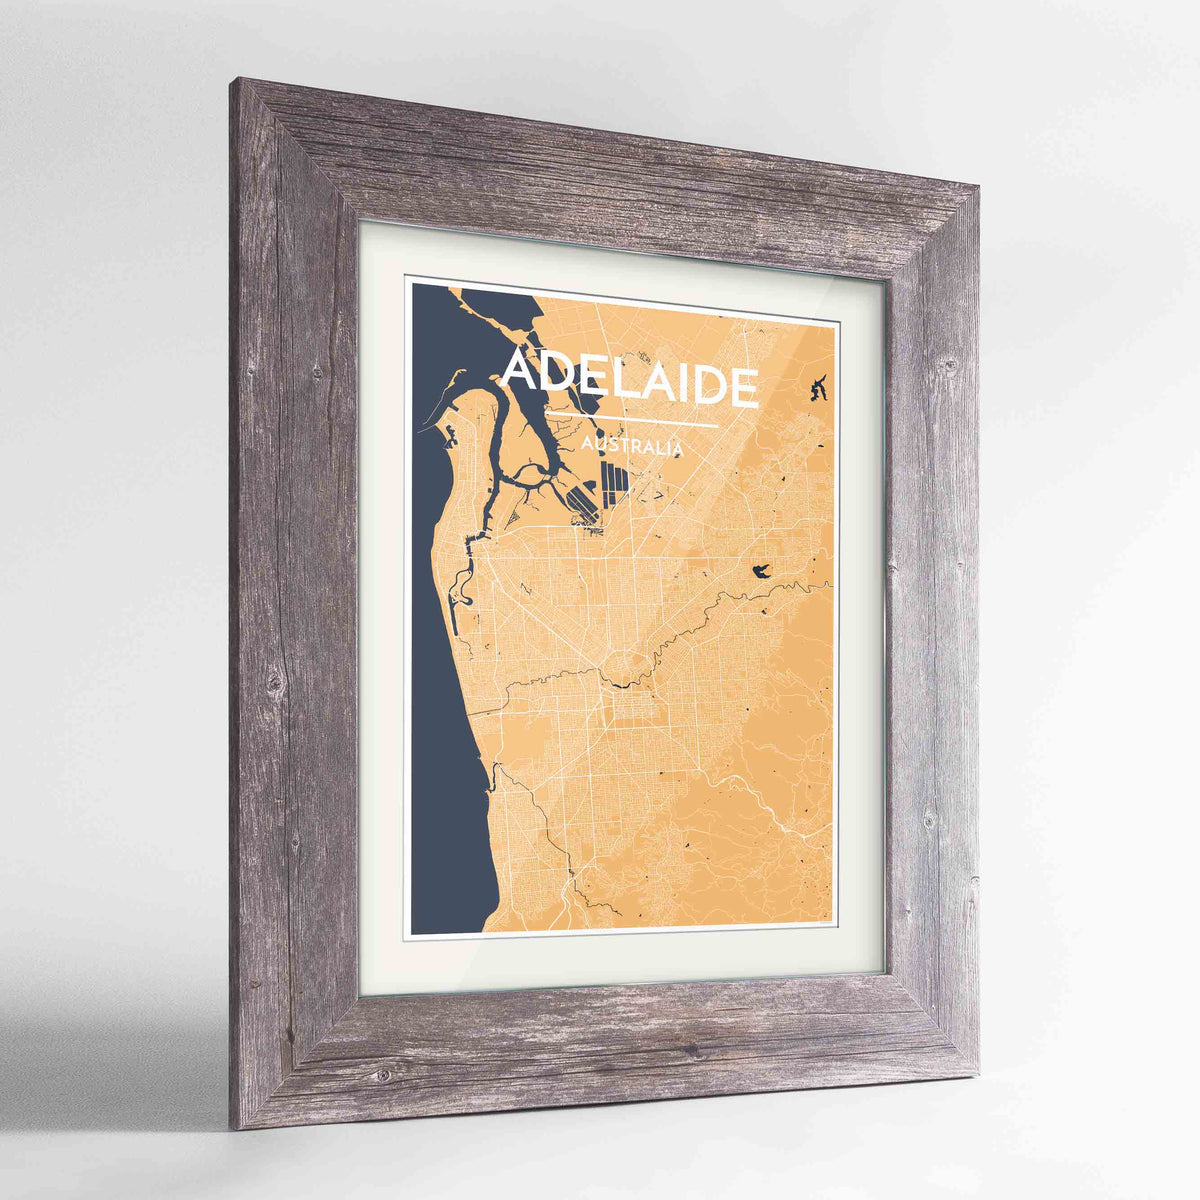 "Framed Adelaide Map Art Print 24x36"" Western Grey frame Point Two Design Group"